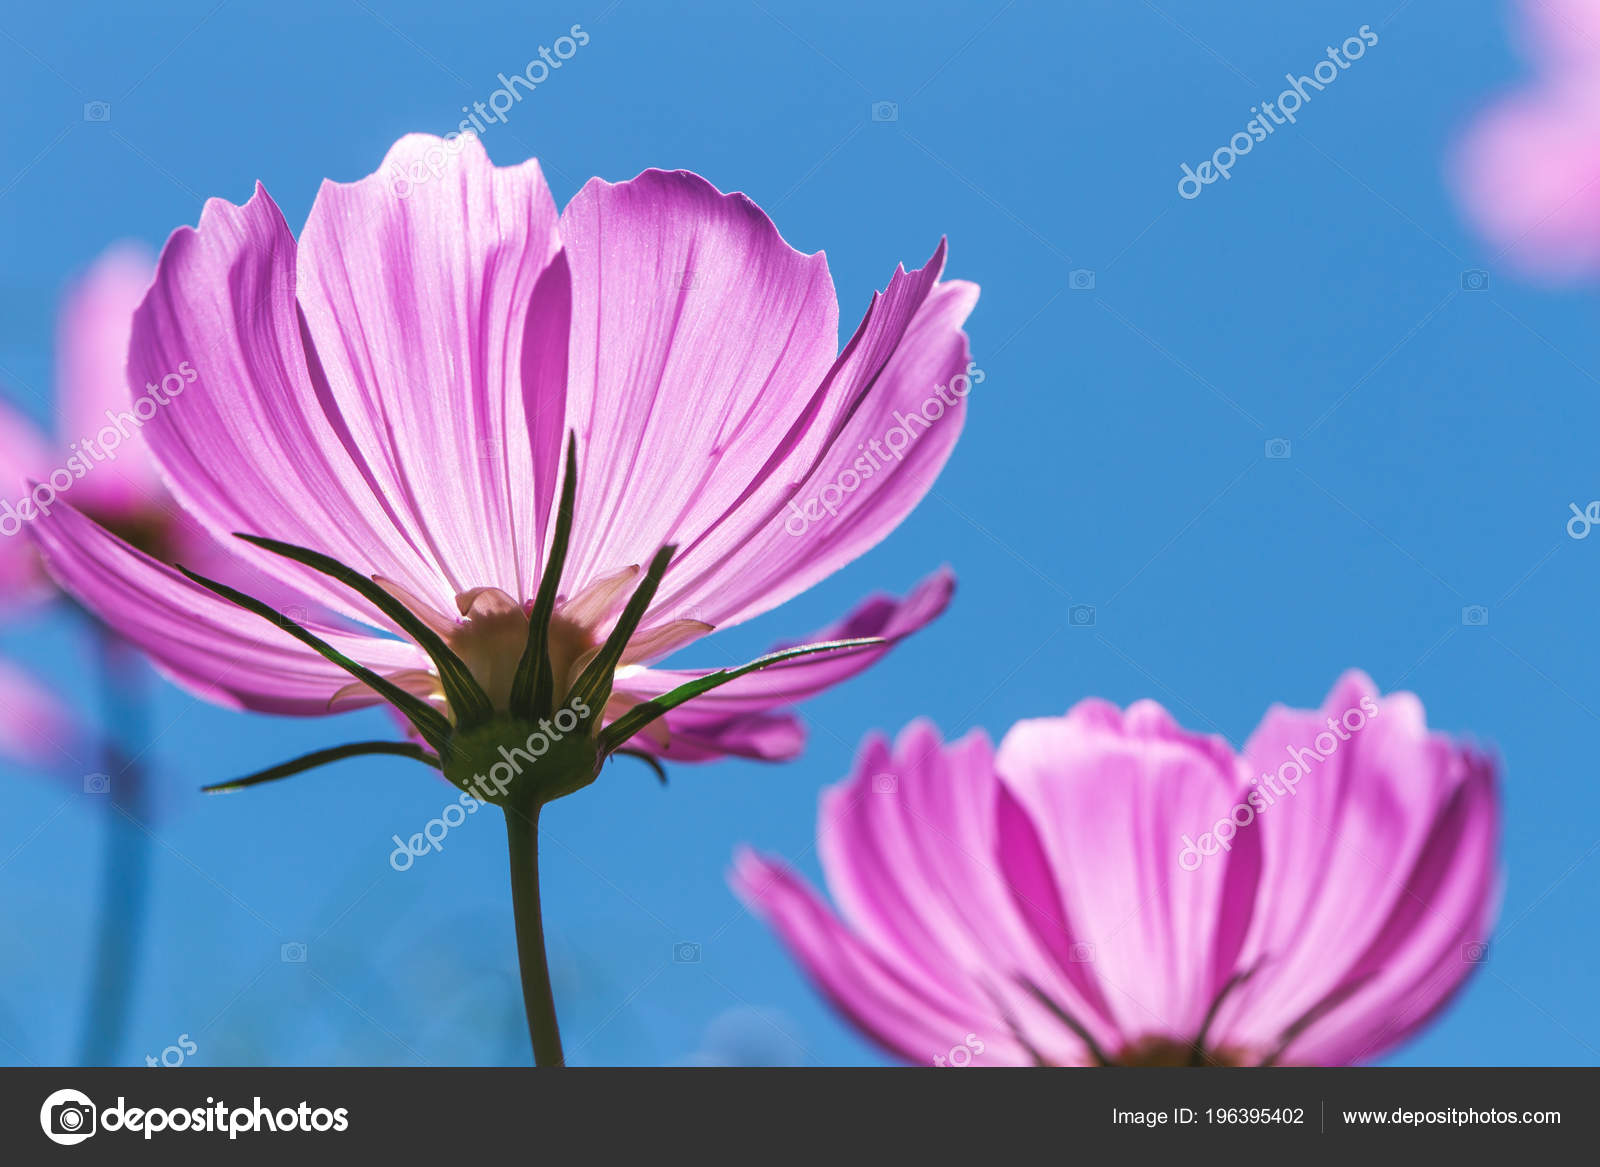 Close Focus On Pink Cosmos Flower With Transparent Petals Touching Sunlight Clear Blue Sky As Background Photo By Skasiansin